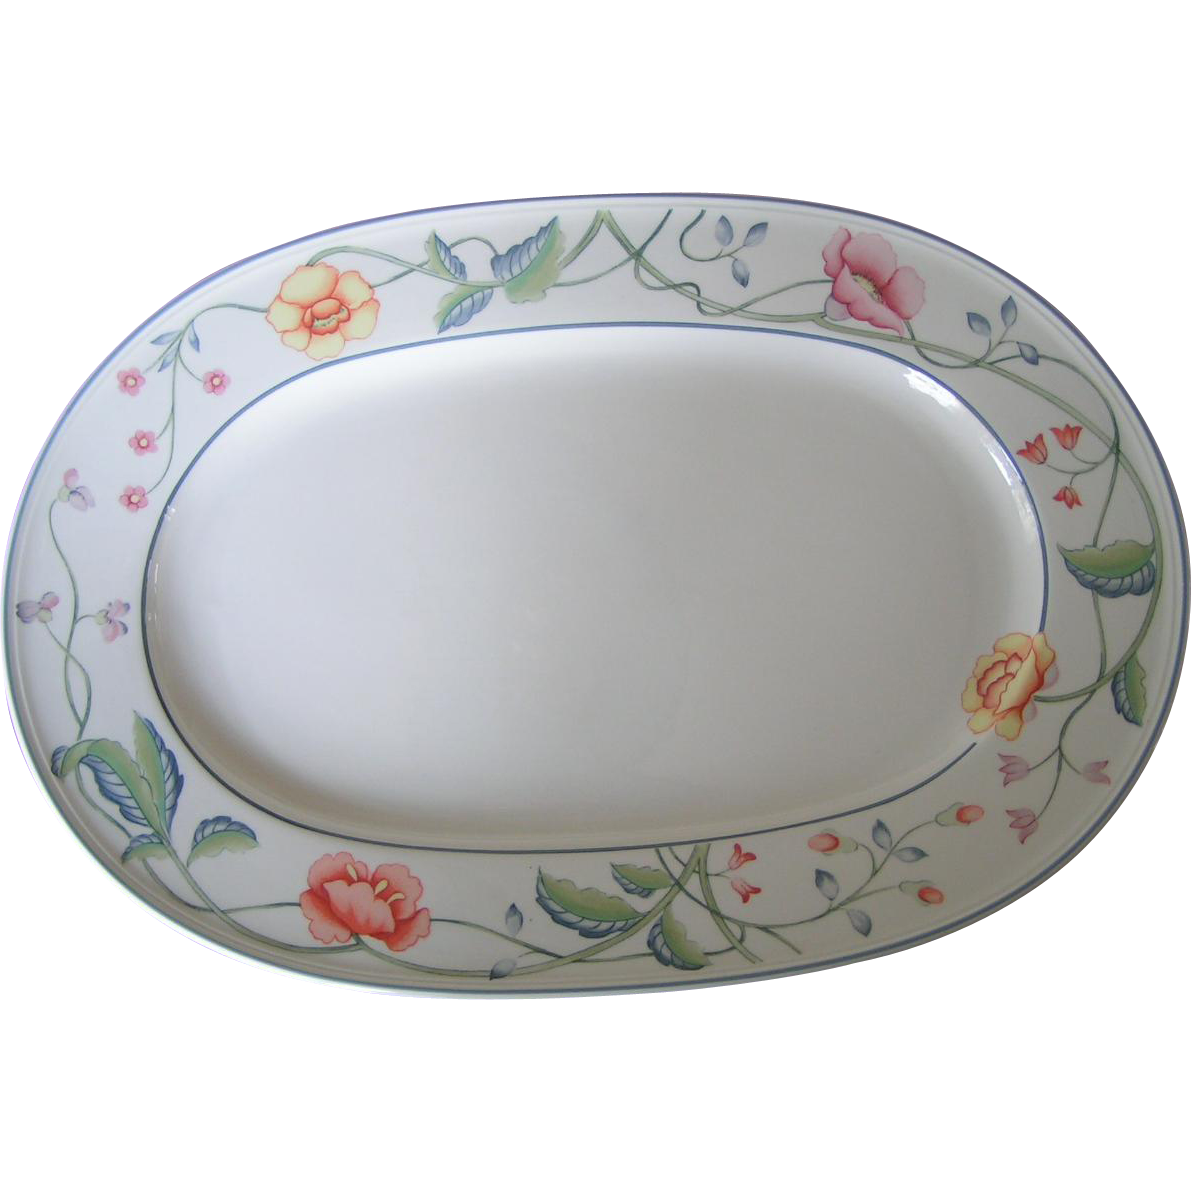 villeroy boch large albertina platter from thefoundobject on ruby lane. Black Bedroom Furniture Sets. Home Design Ideas